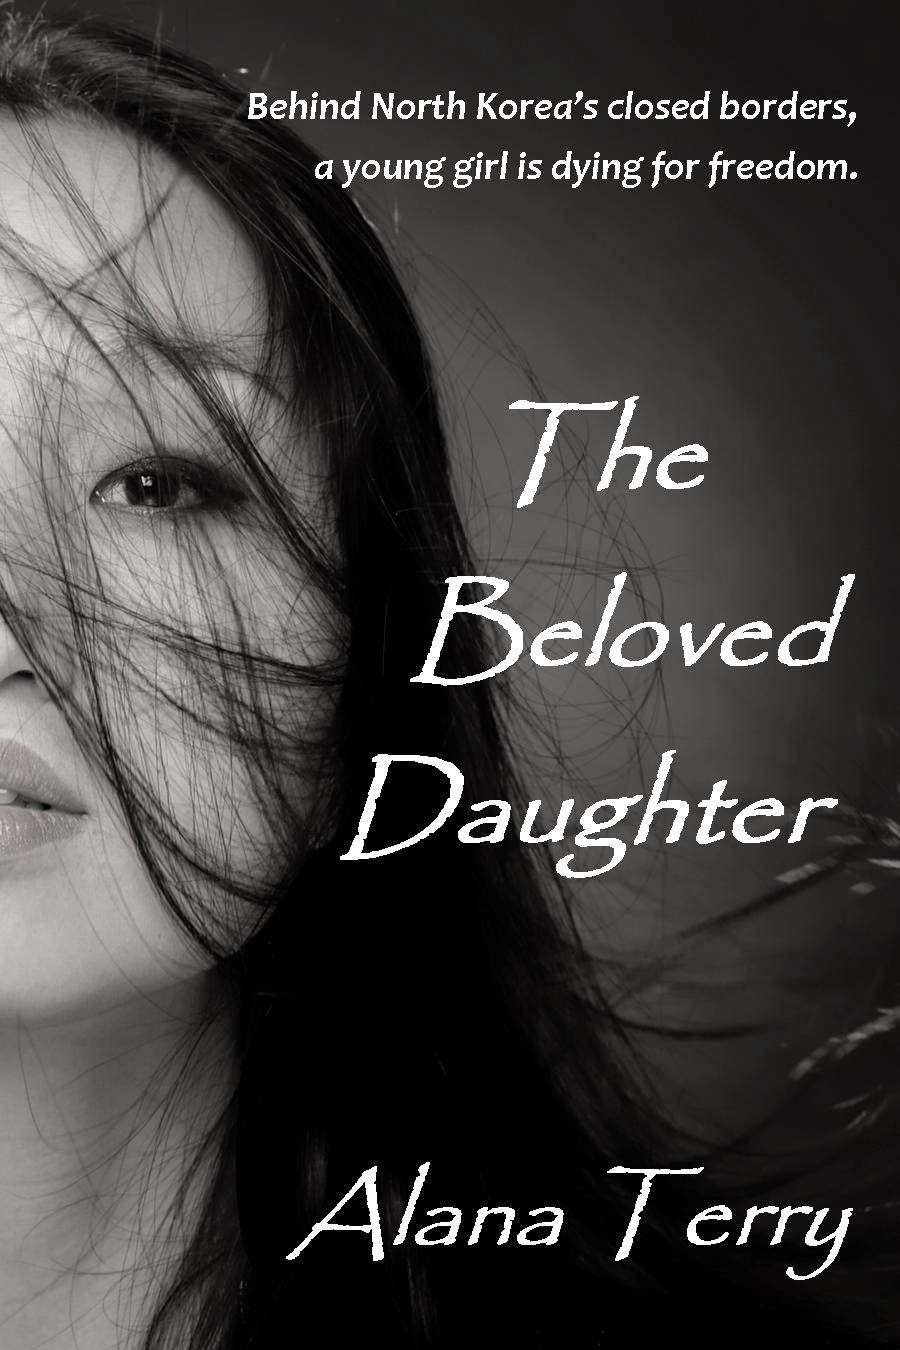 The Beloved Daughter Is An Inspirational Suspense Novel By Alana Terry,  Which Tells The Story Of A Young Girl Sent To A North Korean Prison Camp  For Her